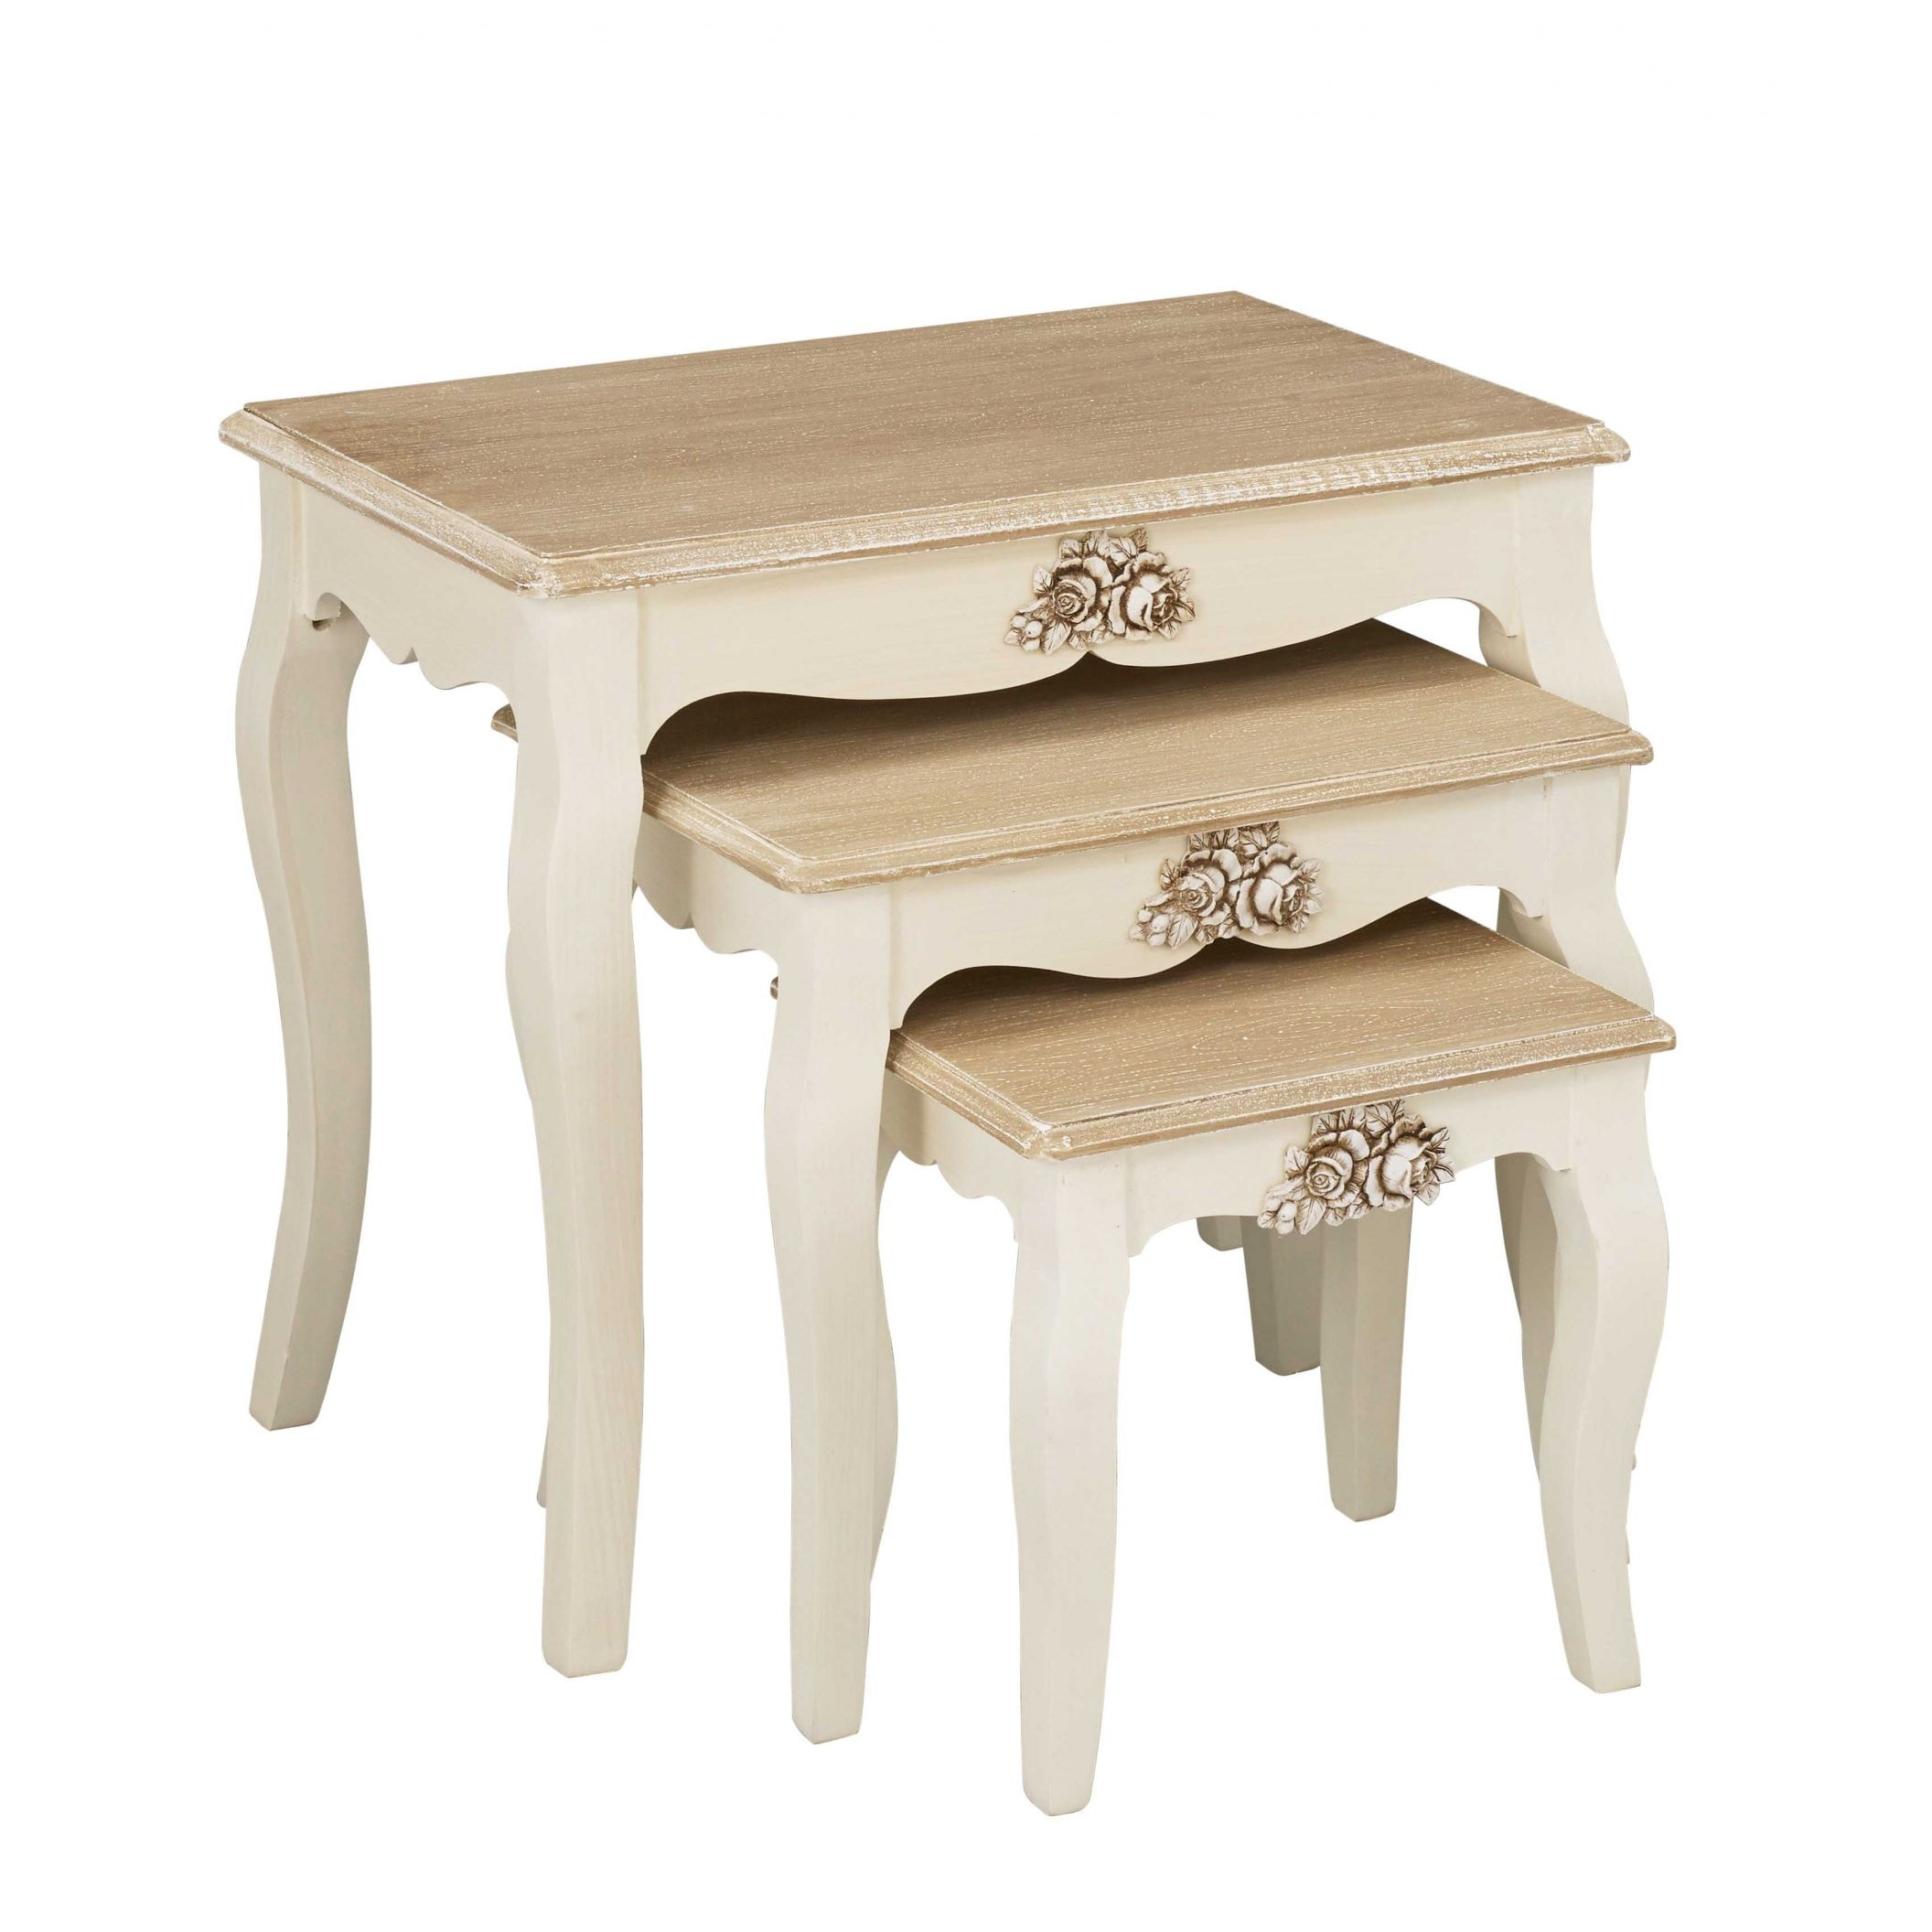 Juliette shabby chic nest of tables french furniture juliette shabby chic nest of tables watchthetrailerfo